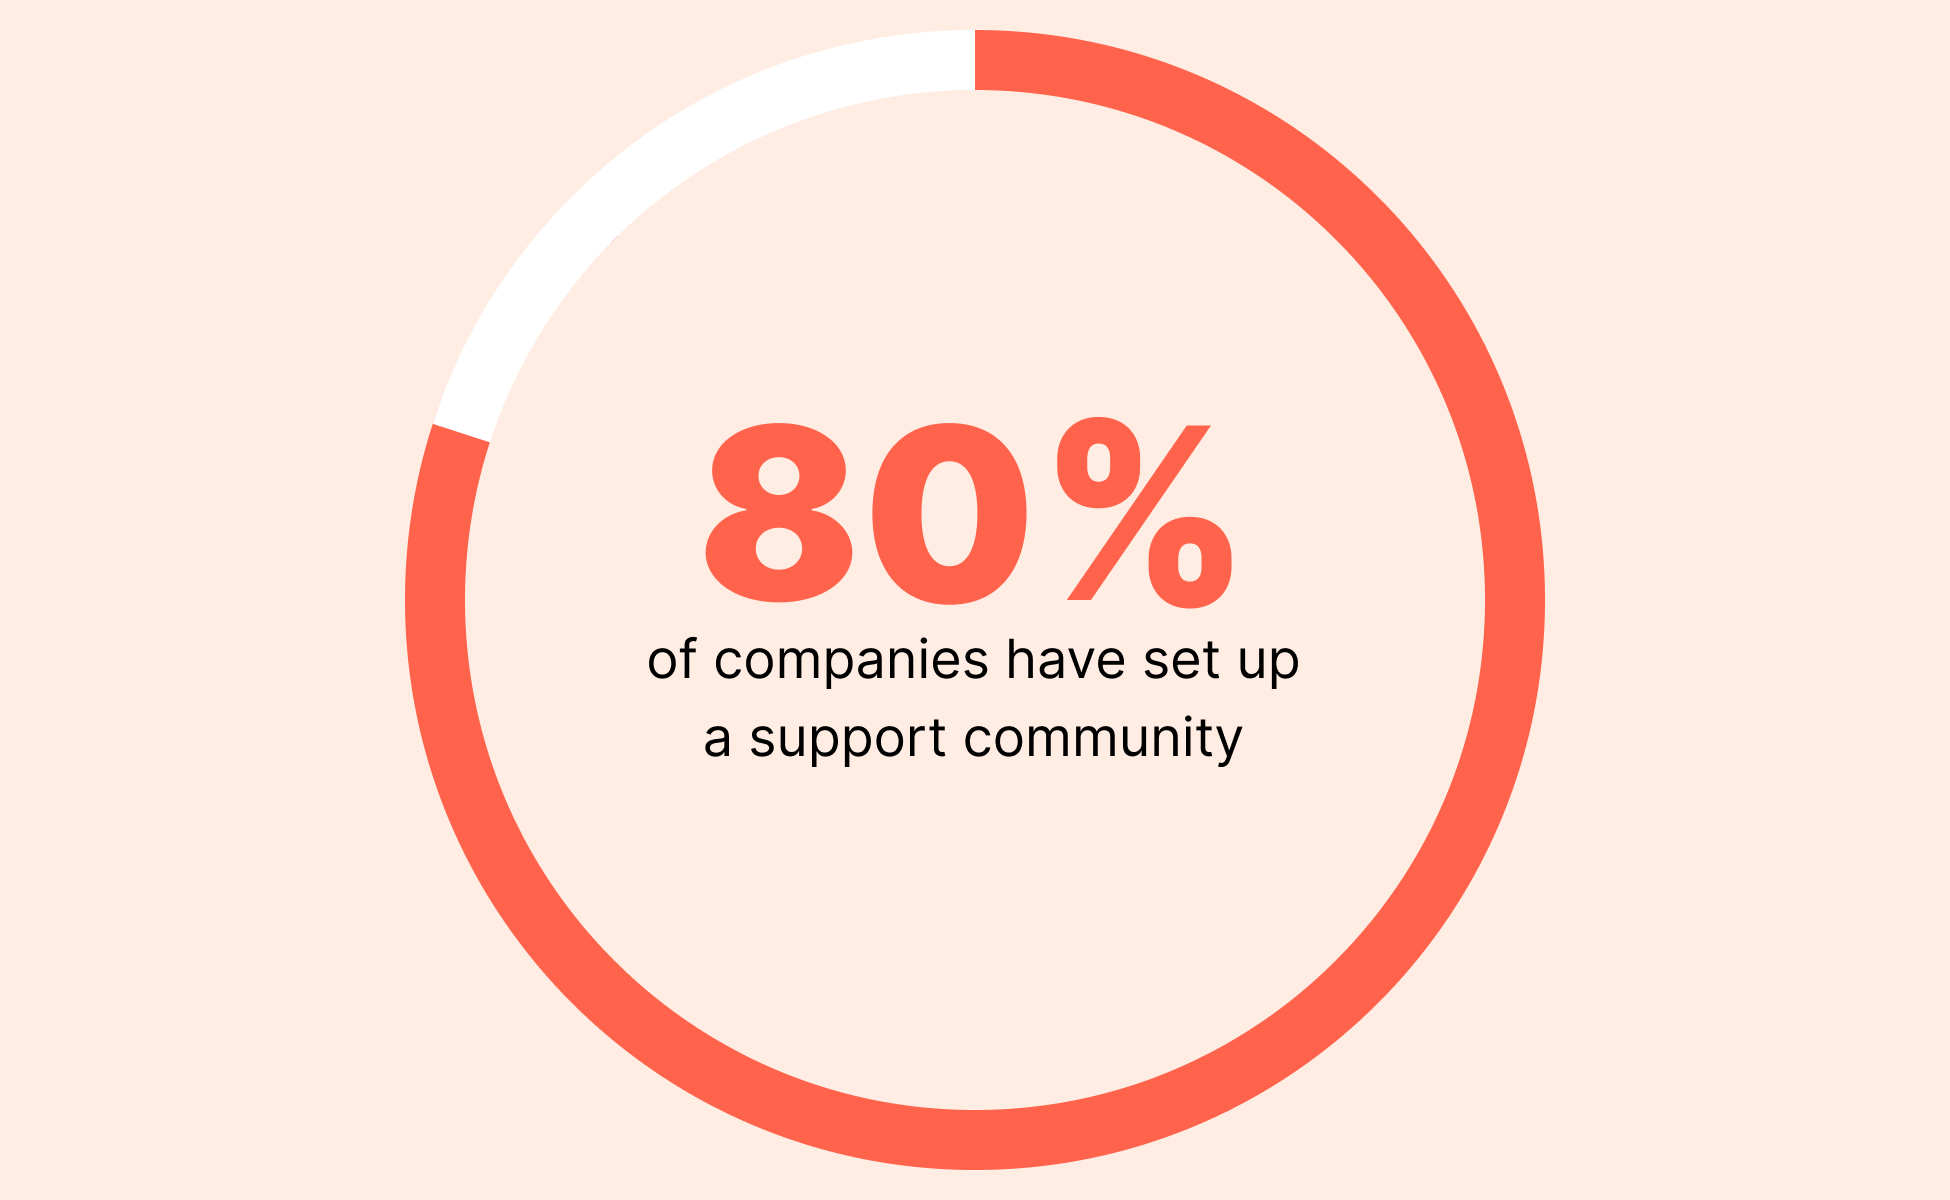 80% of companies have set up a support community